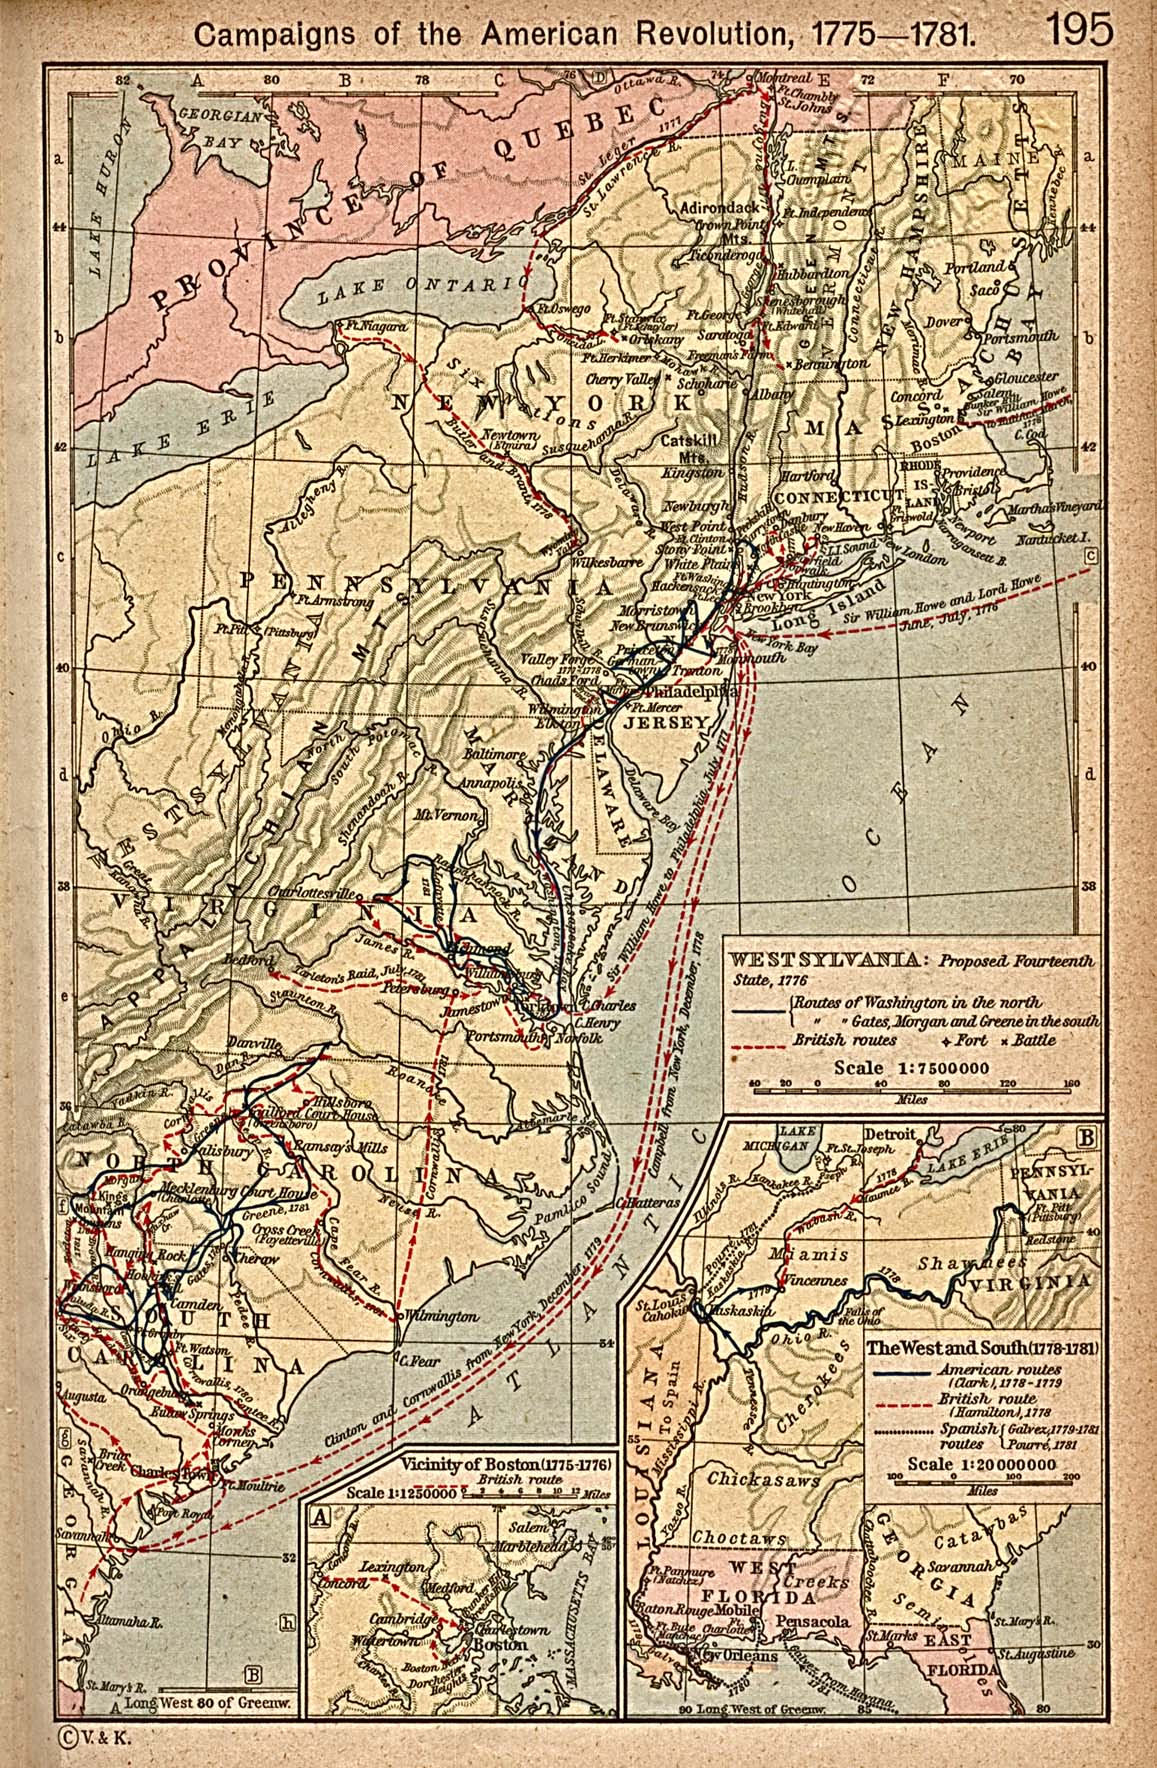 New York Map Revolutionary War